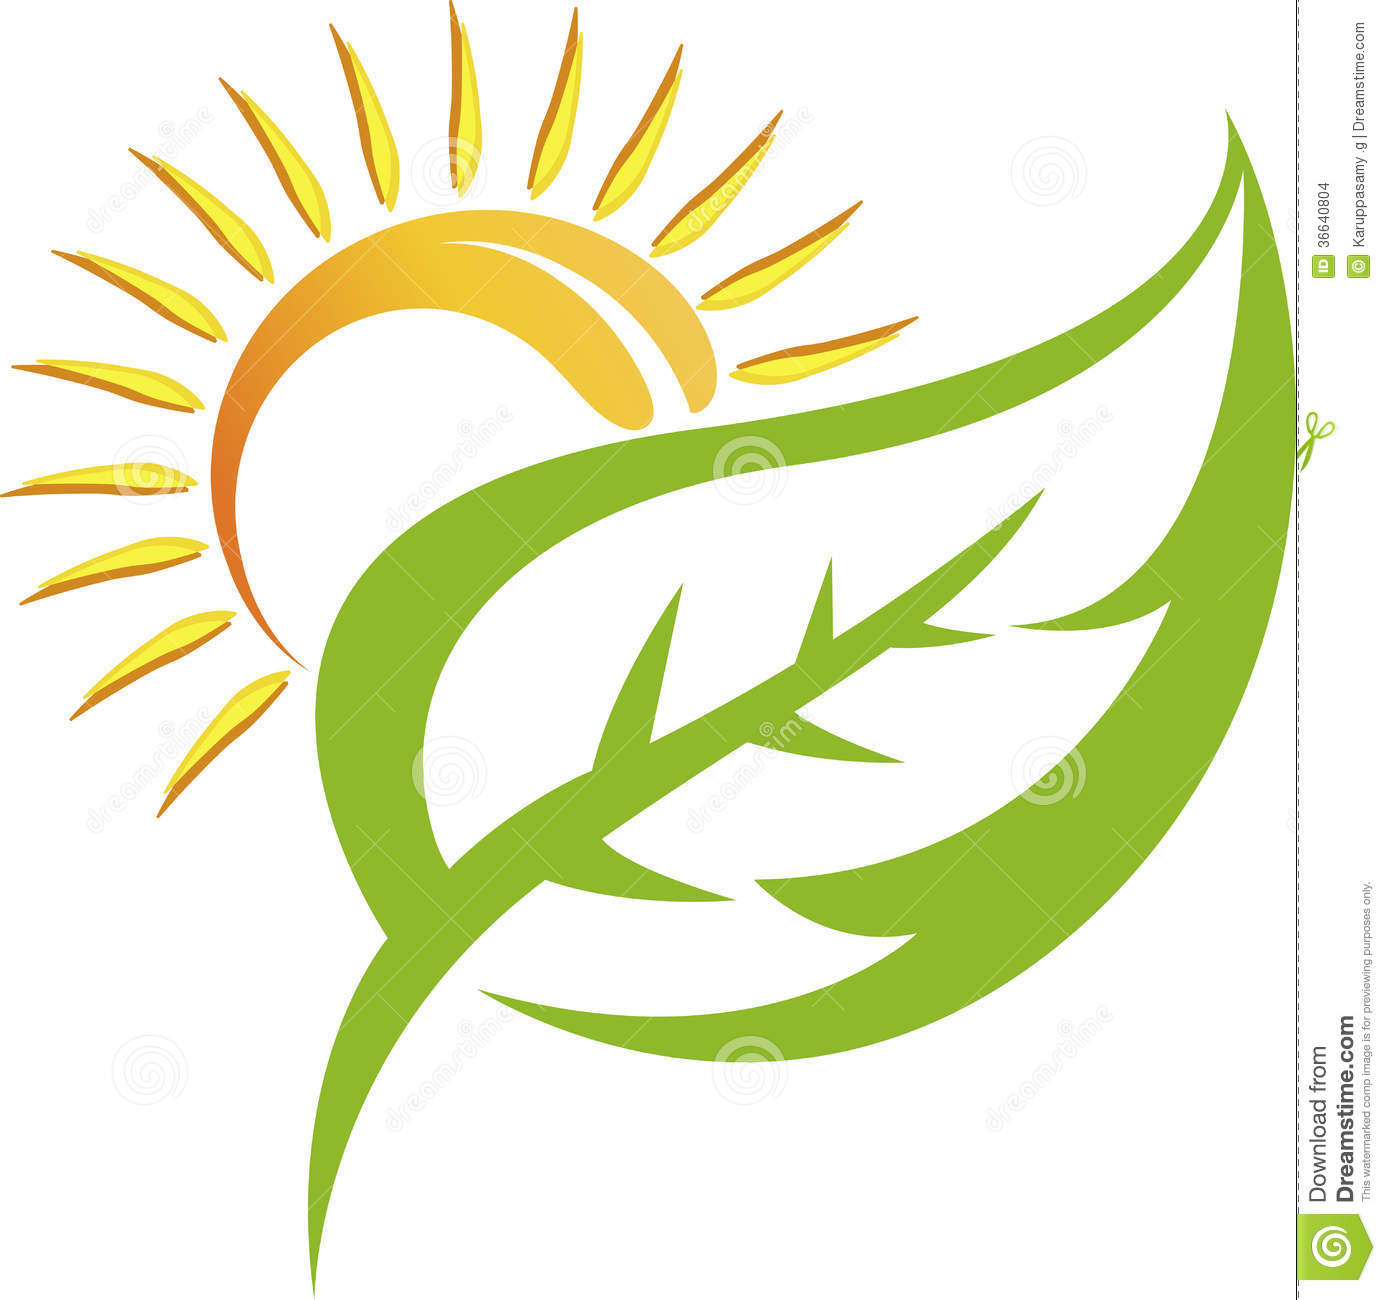 Illustration art of a leaf logo with isolated background.